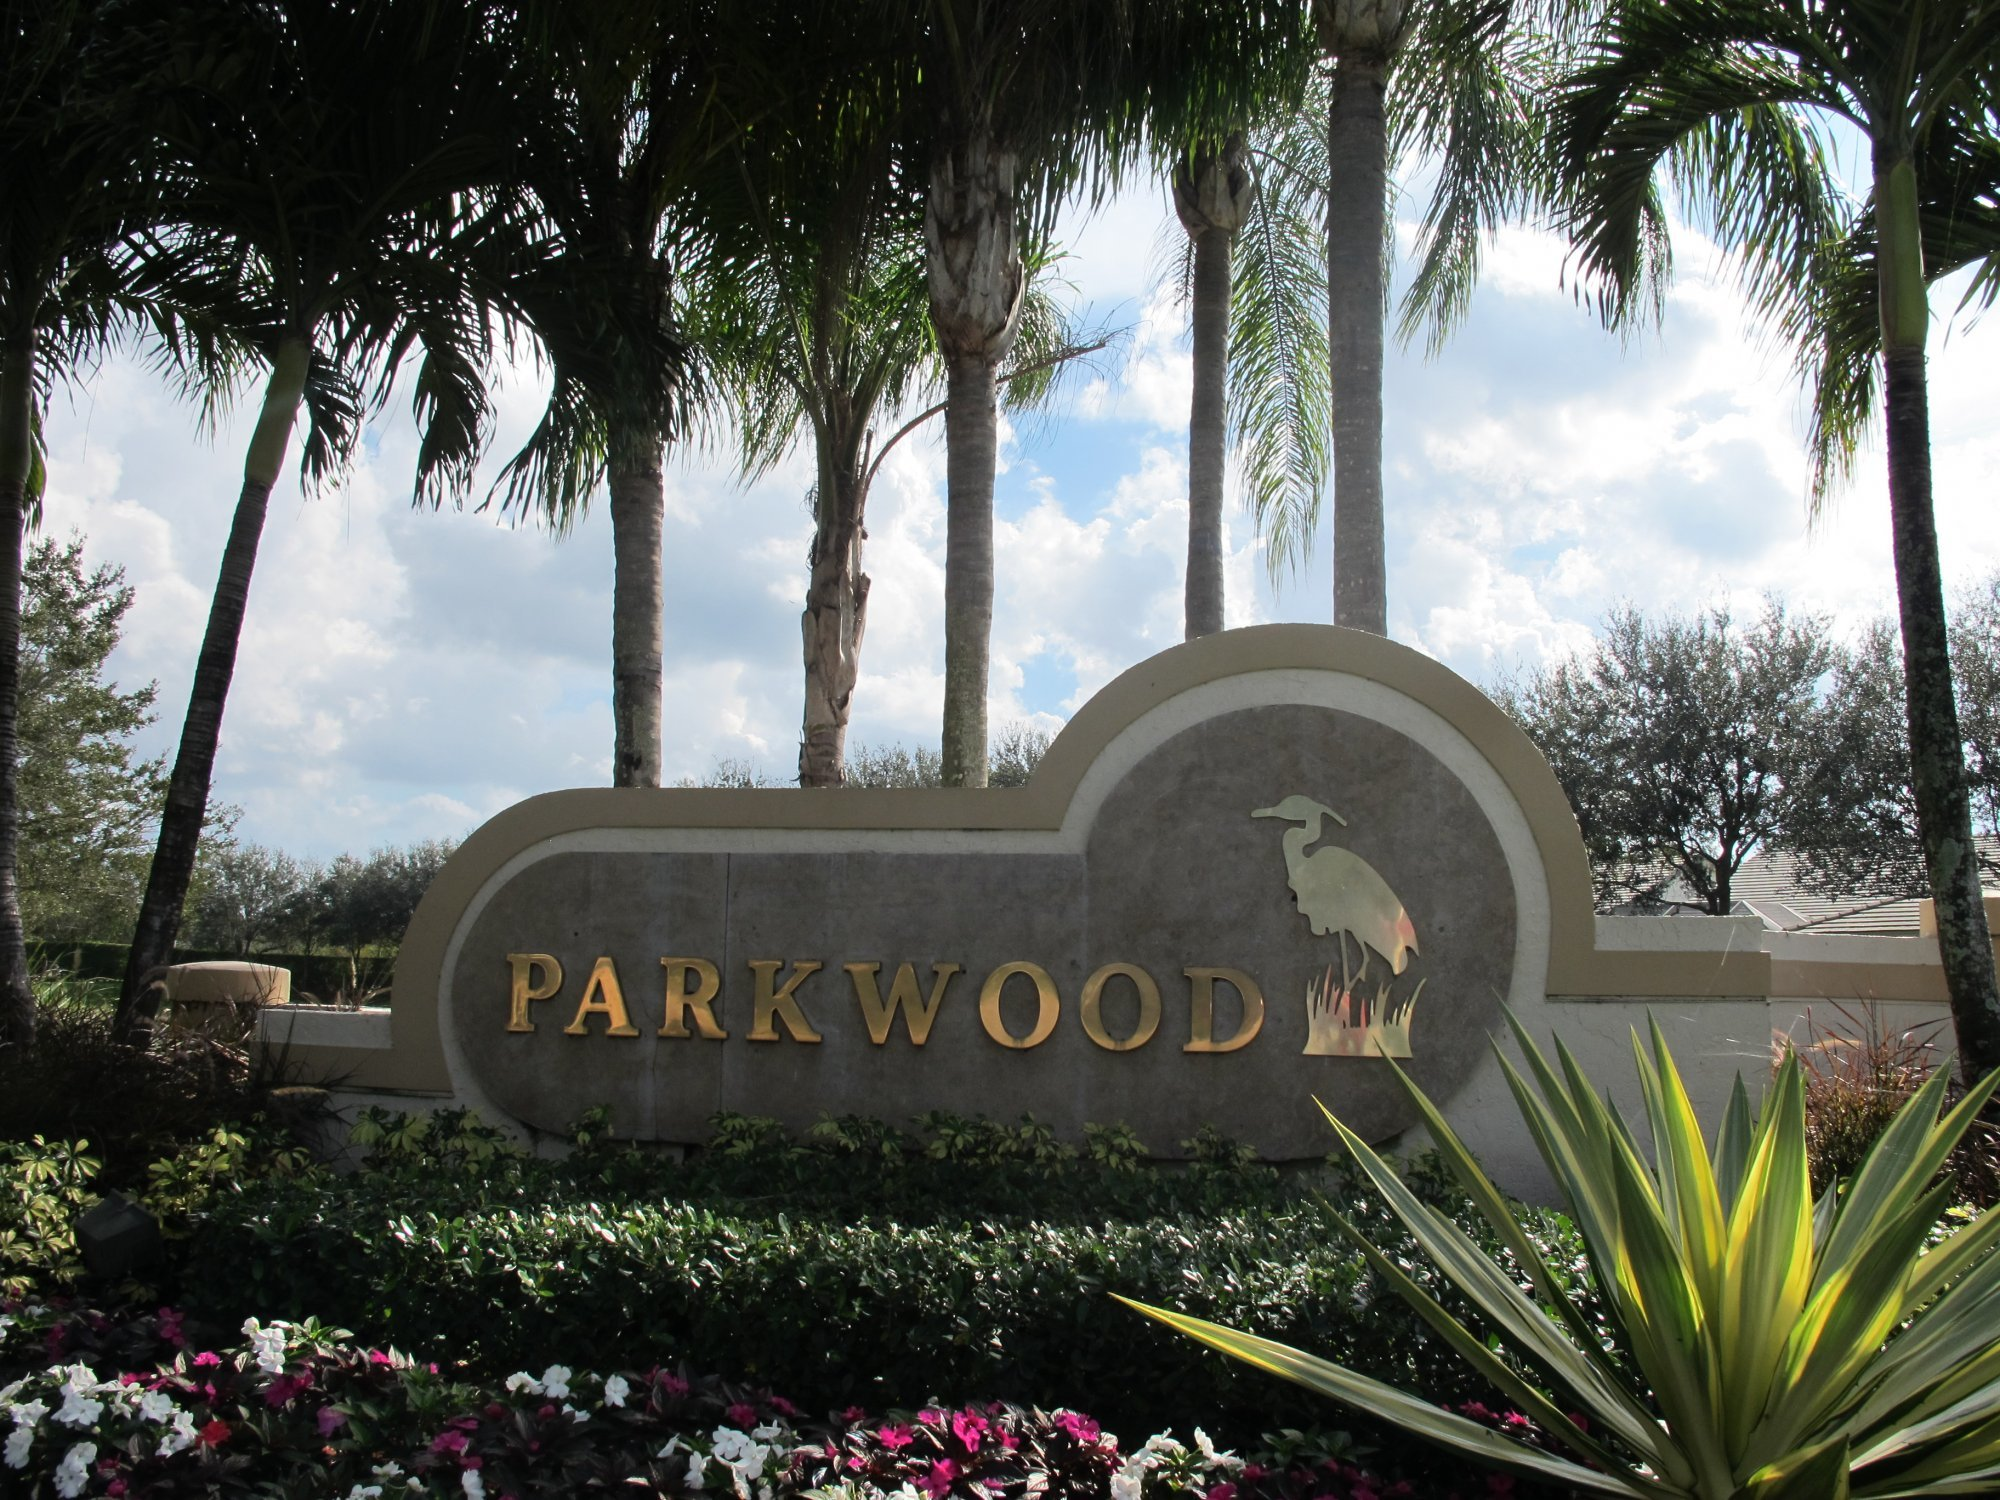 Parkwood homes for sale